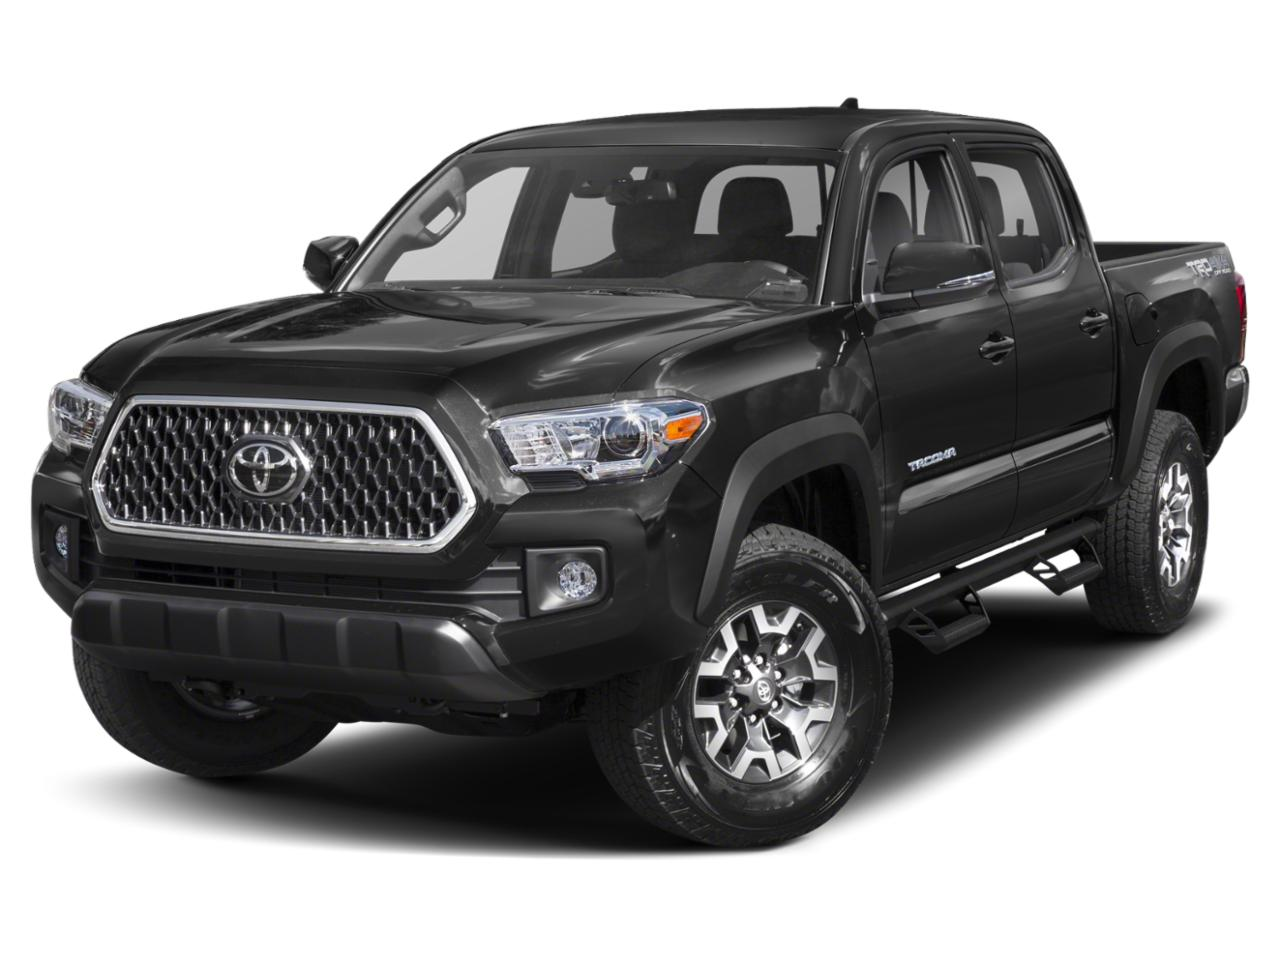 2019 Toyota Tacoma 4WD Vehicle Photo in El Paso, TX 79936